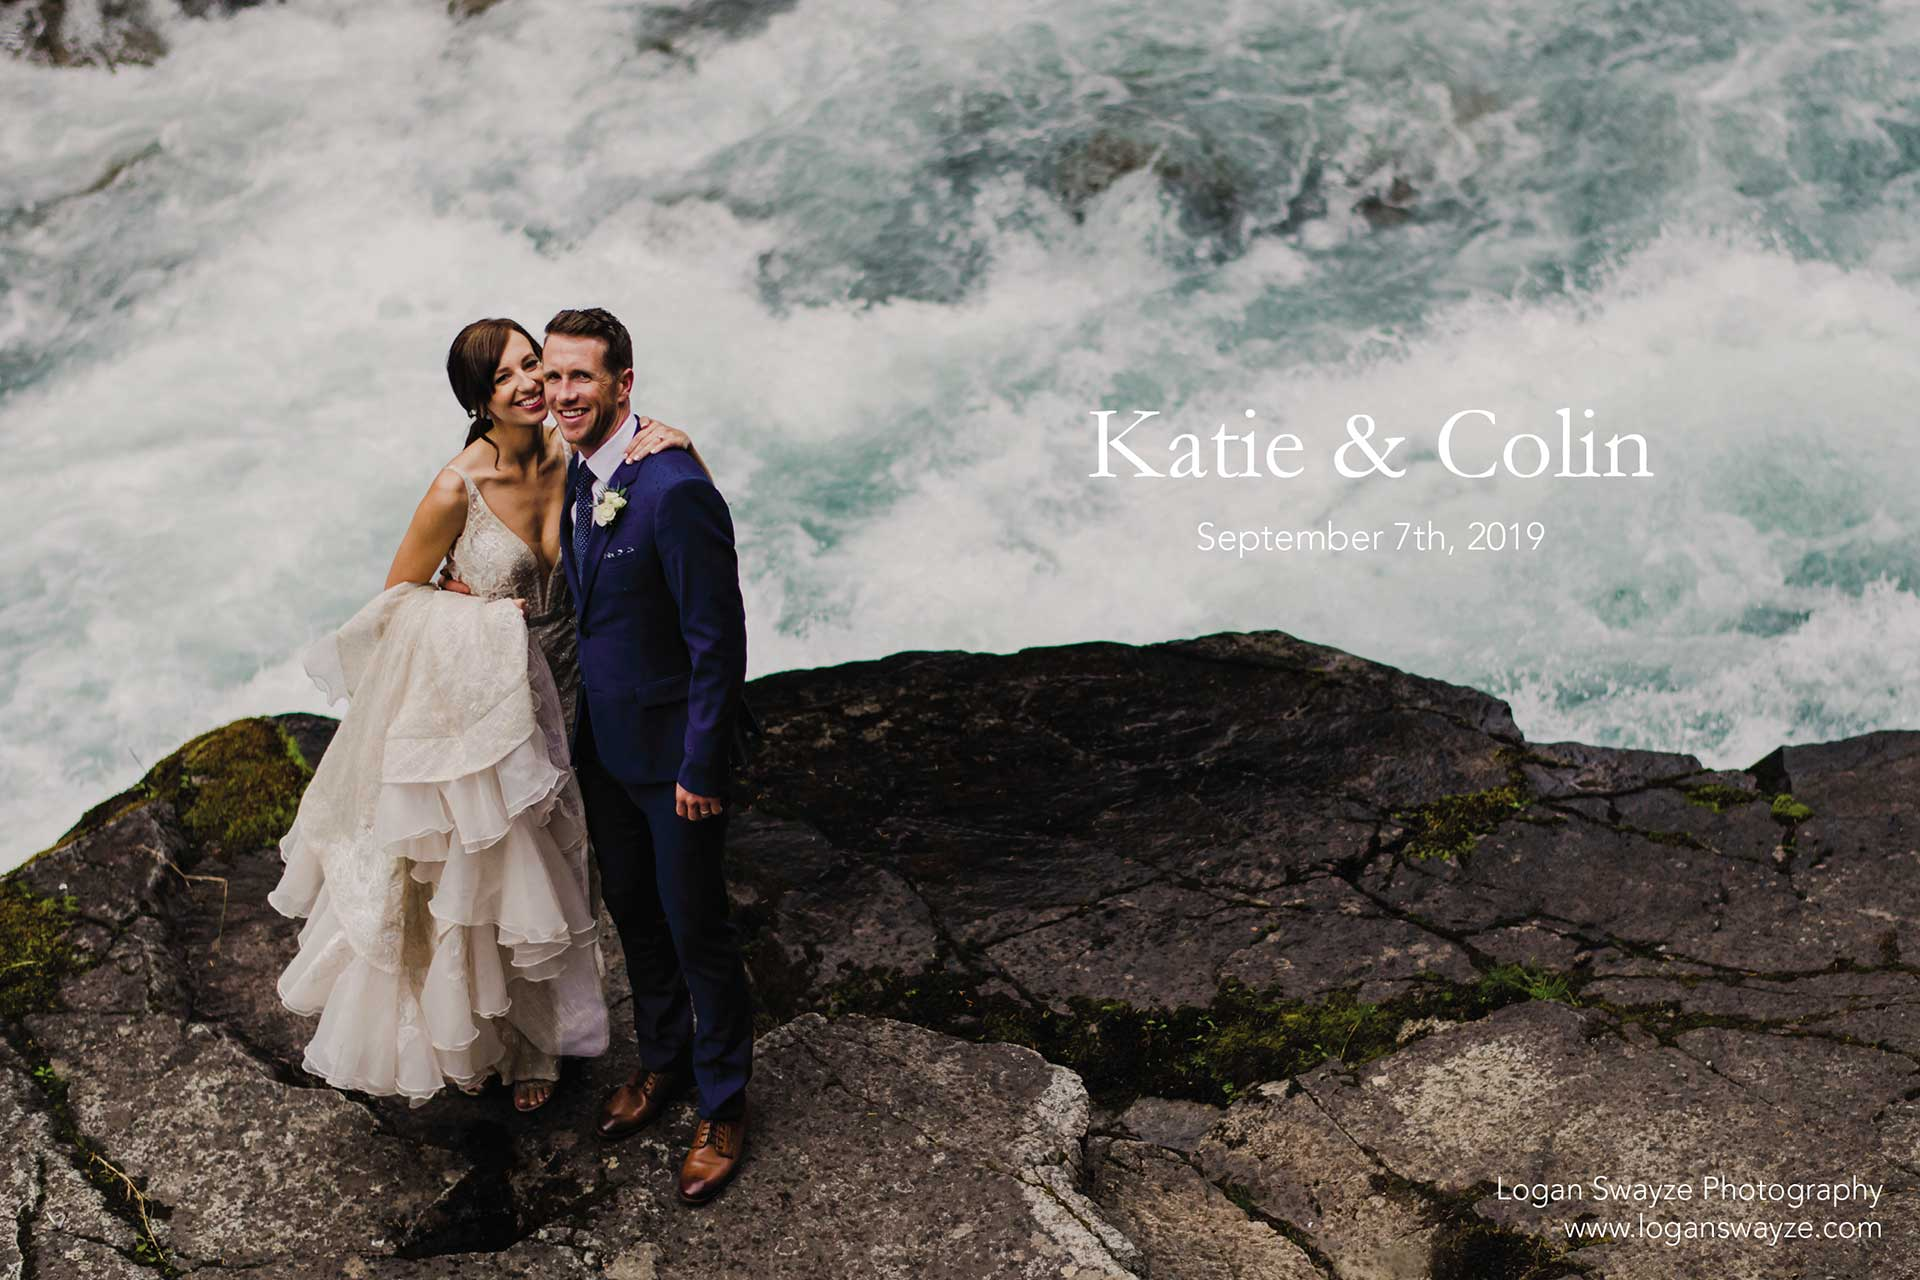 Katie and Colin's Wedding